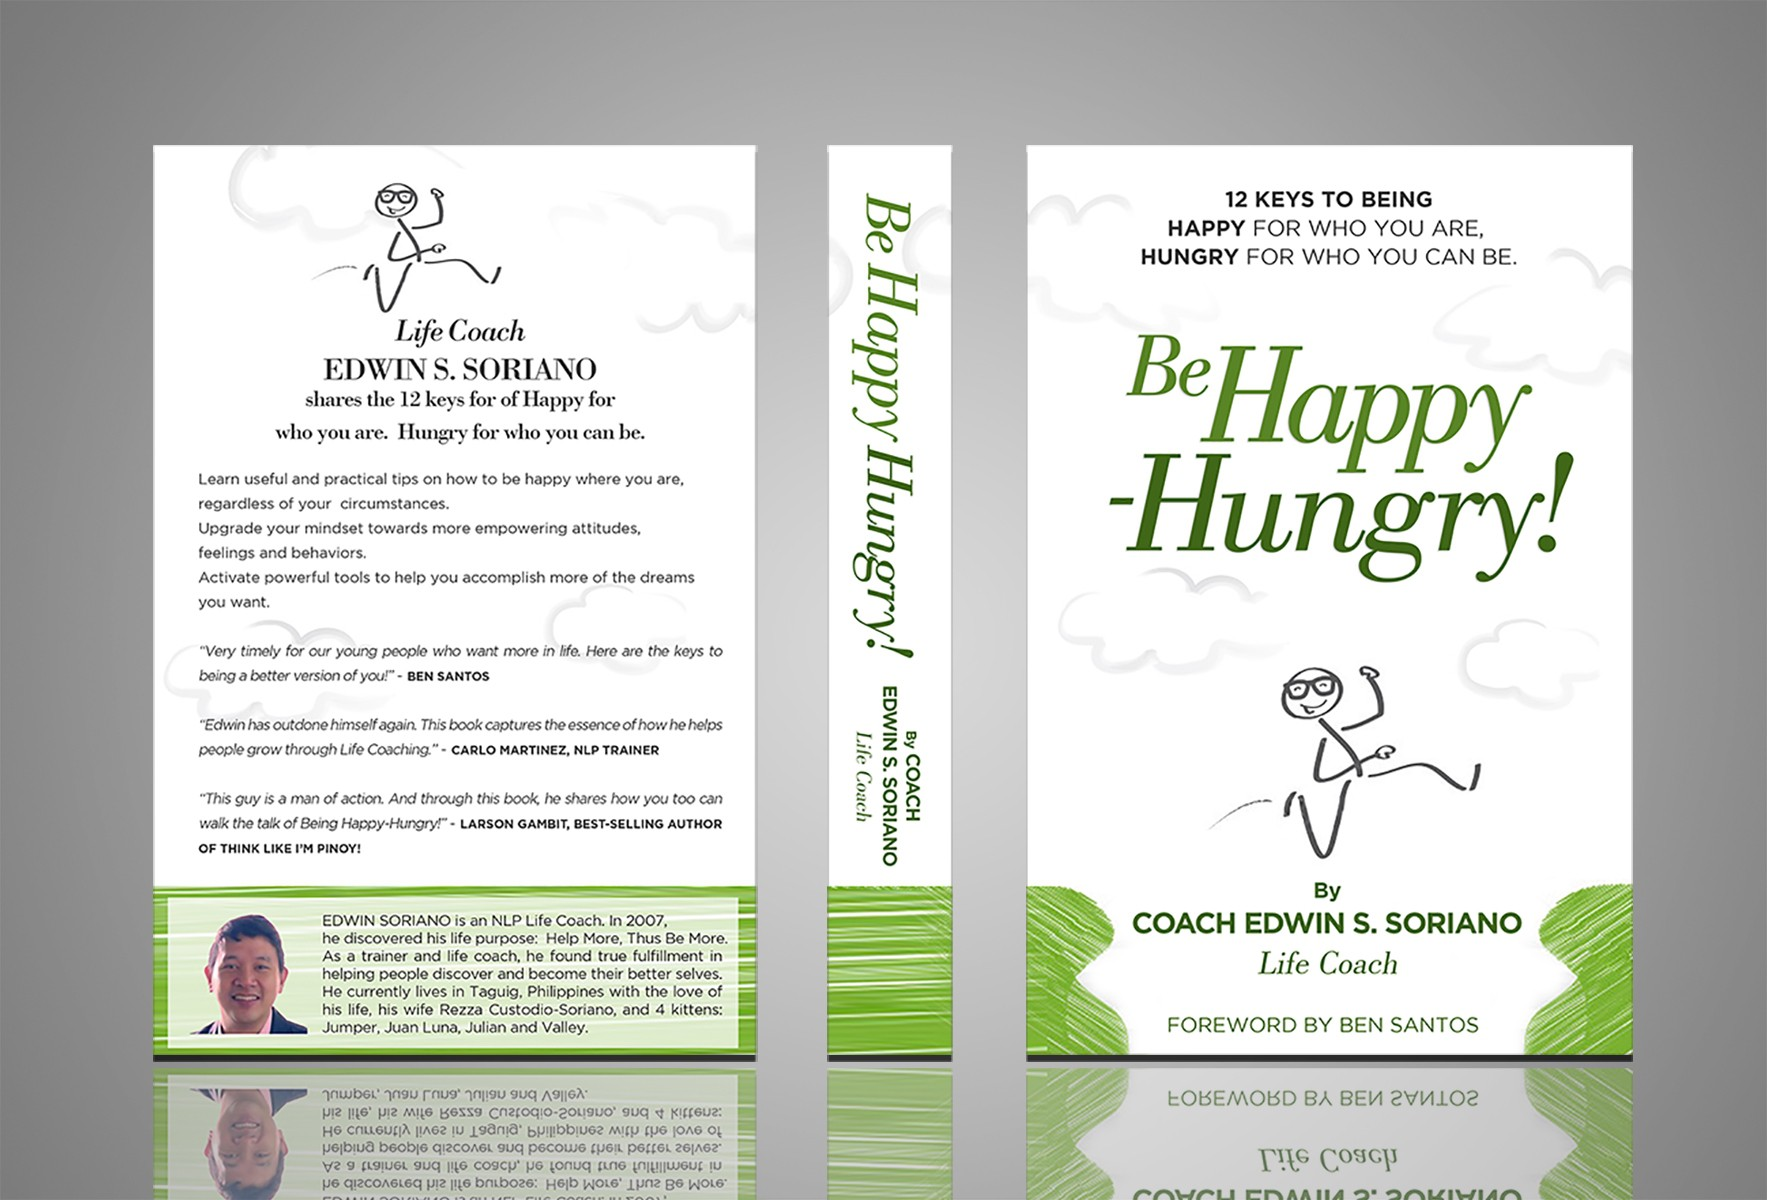 """Book Cover for: """"Be Happy-Hungry!"""" - Happy for who you are, Hungry for who you can be!"""